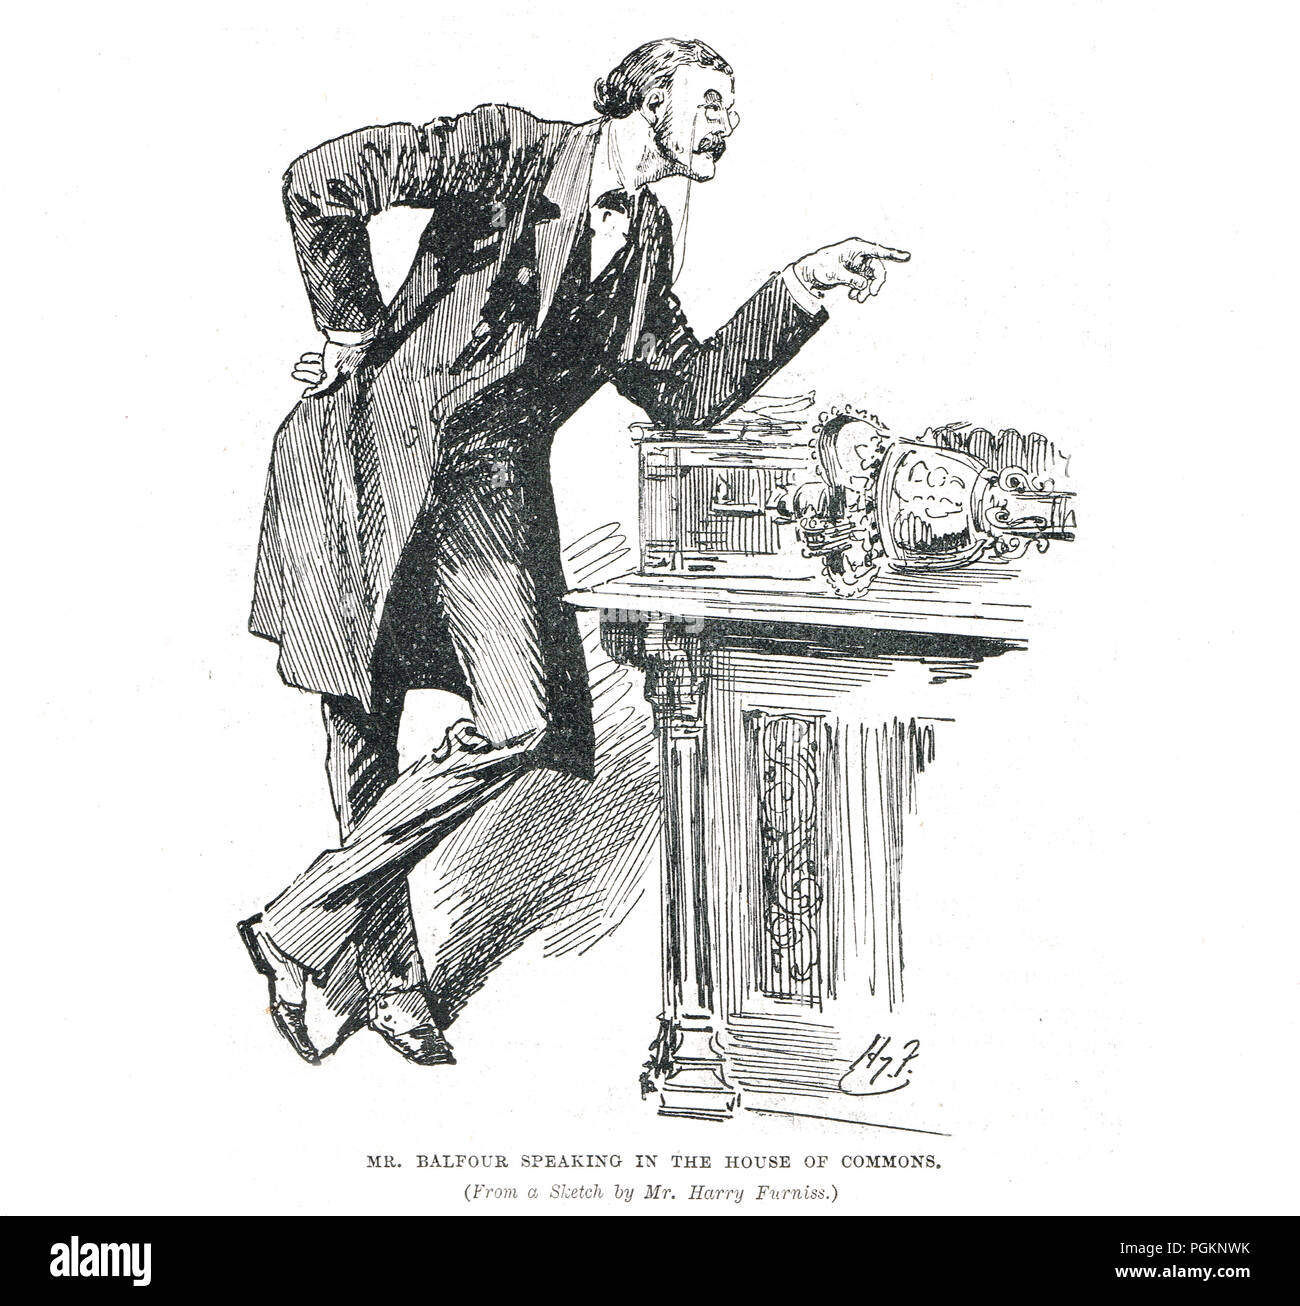 Arthur Balfour speaking in the House of Commons by Harry Furniss - Stock Image